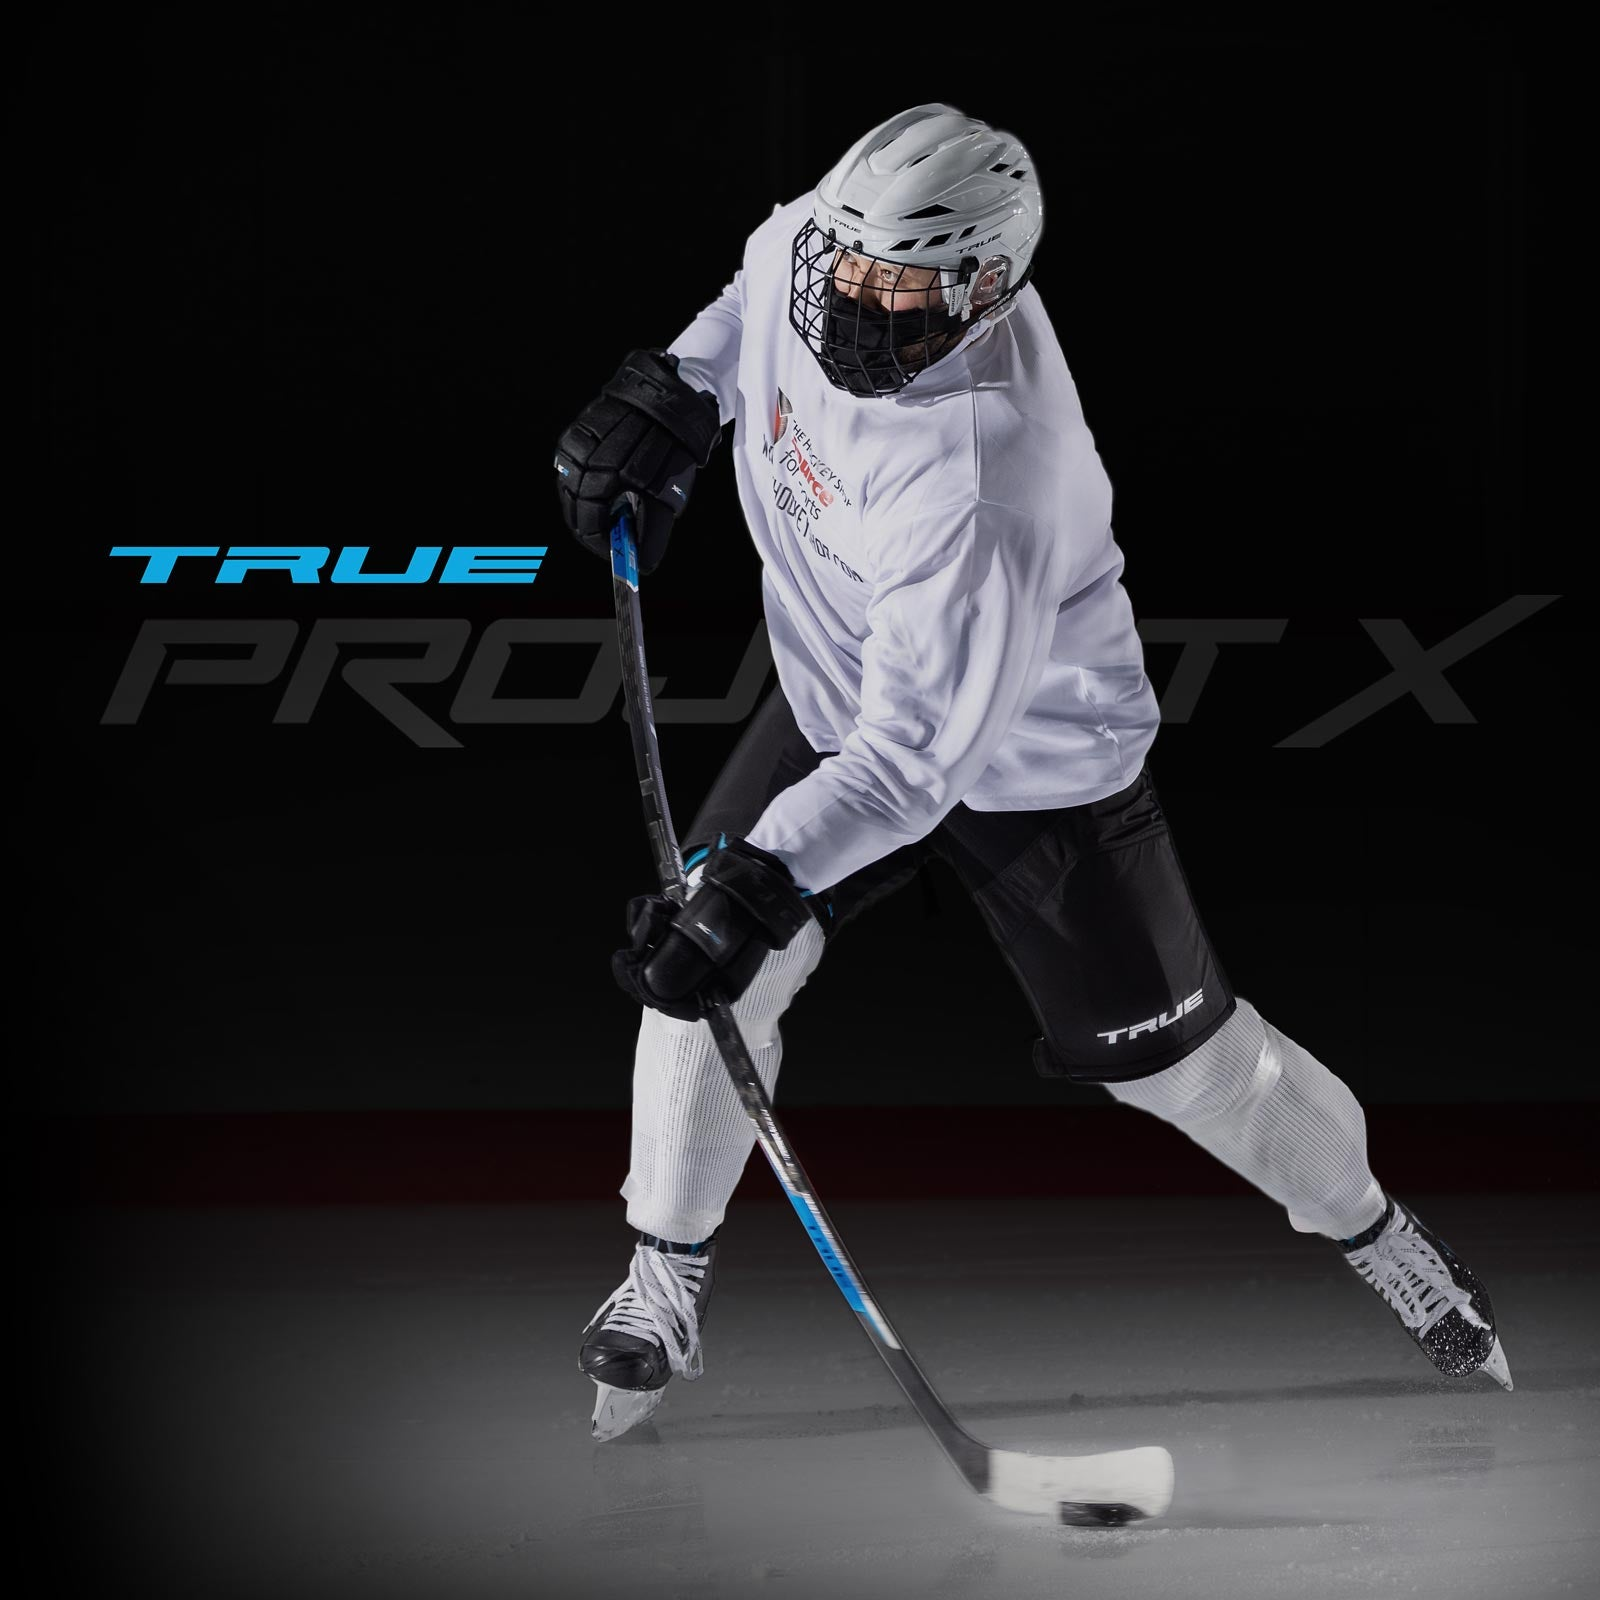 True Project X Hockey Stick Review